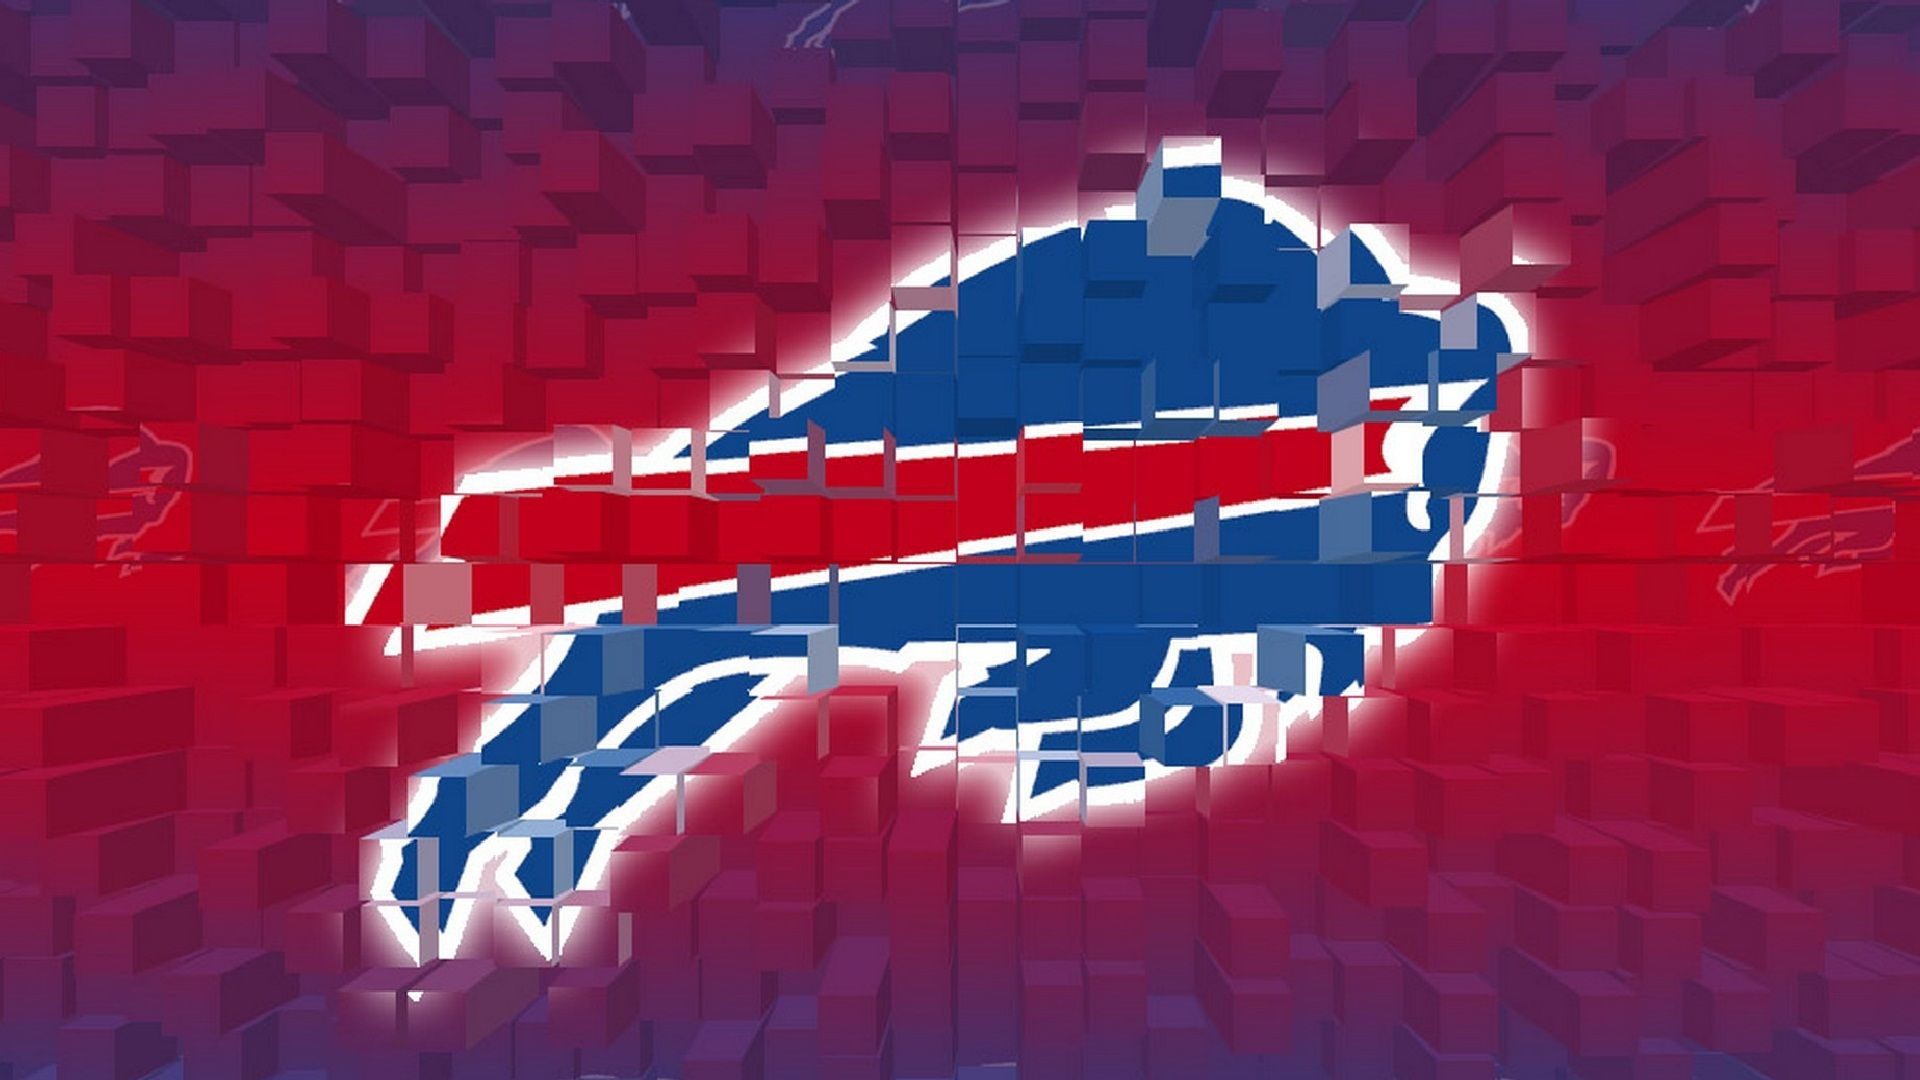 Hd Buffalo Bills Backgrounds 2020 Nfl Football Wallpapers Wallpaper Buffalo Bills Nfl Football Wallpaper